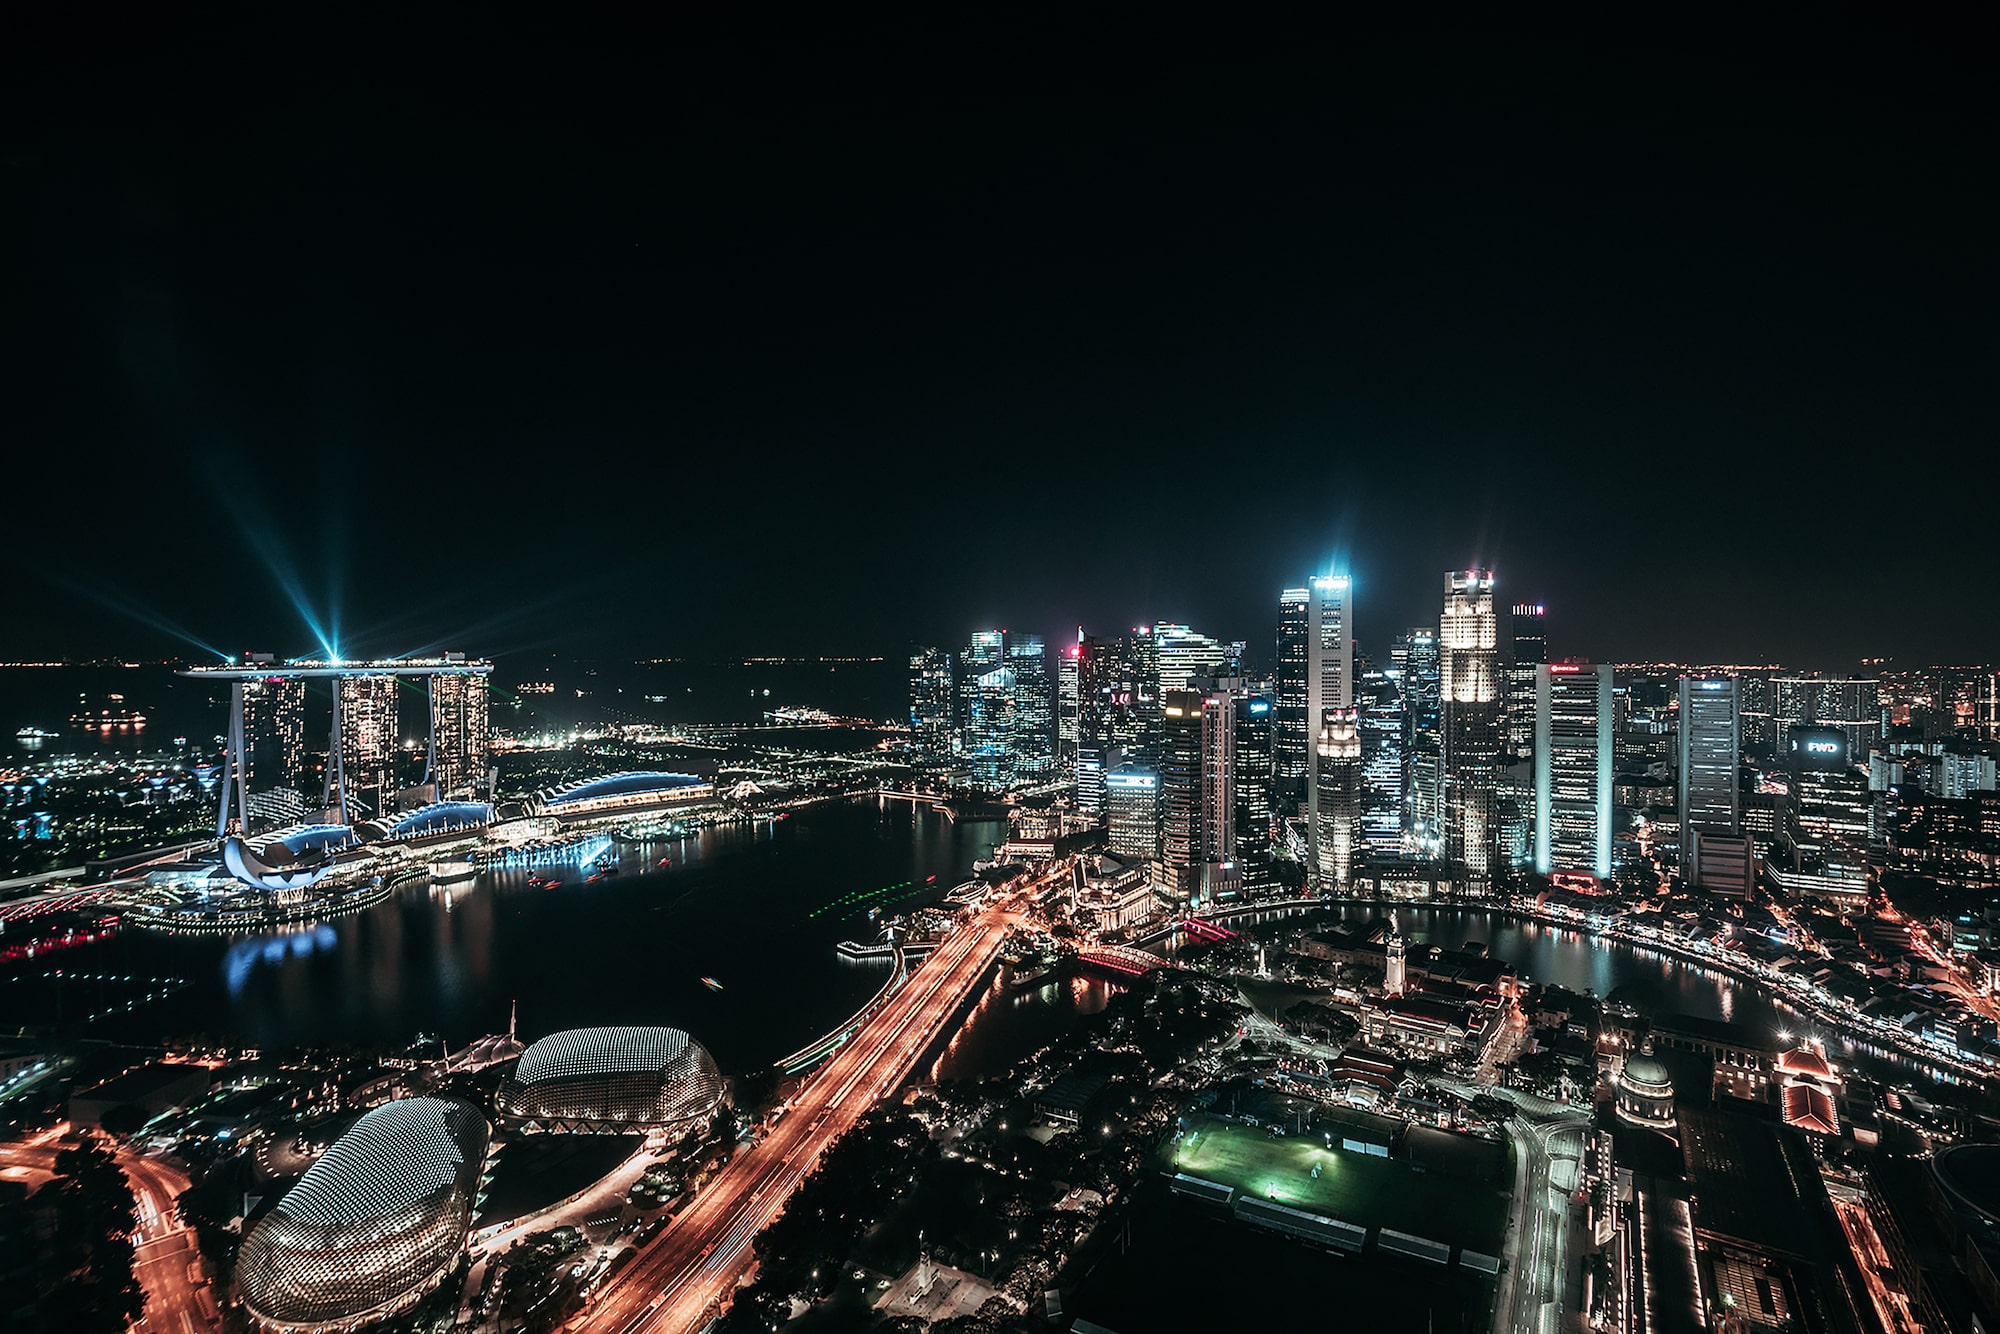 guillaume ruchon sony alpha 7RIII singapore skyline at night showing the marina